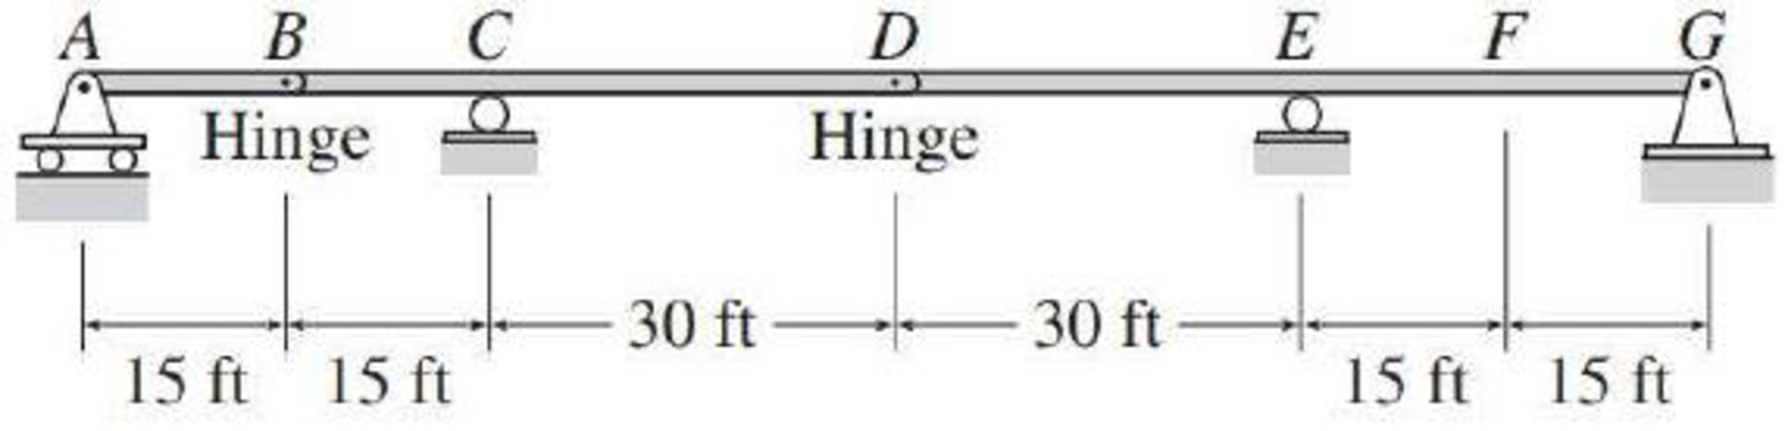 Chapter 8, Problem 24P, Draw the influence lines for the vertical reactions at supports A, C, E, and G of the beams shown in